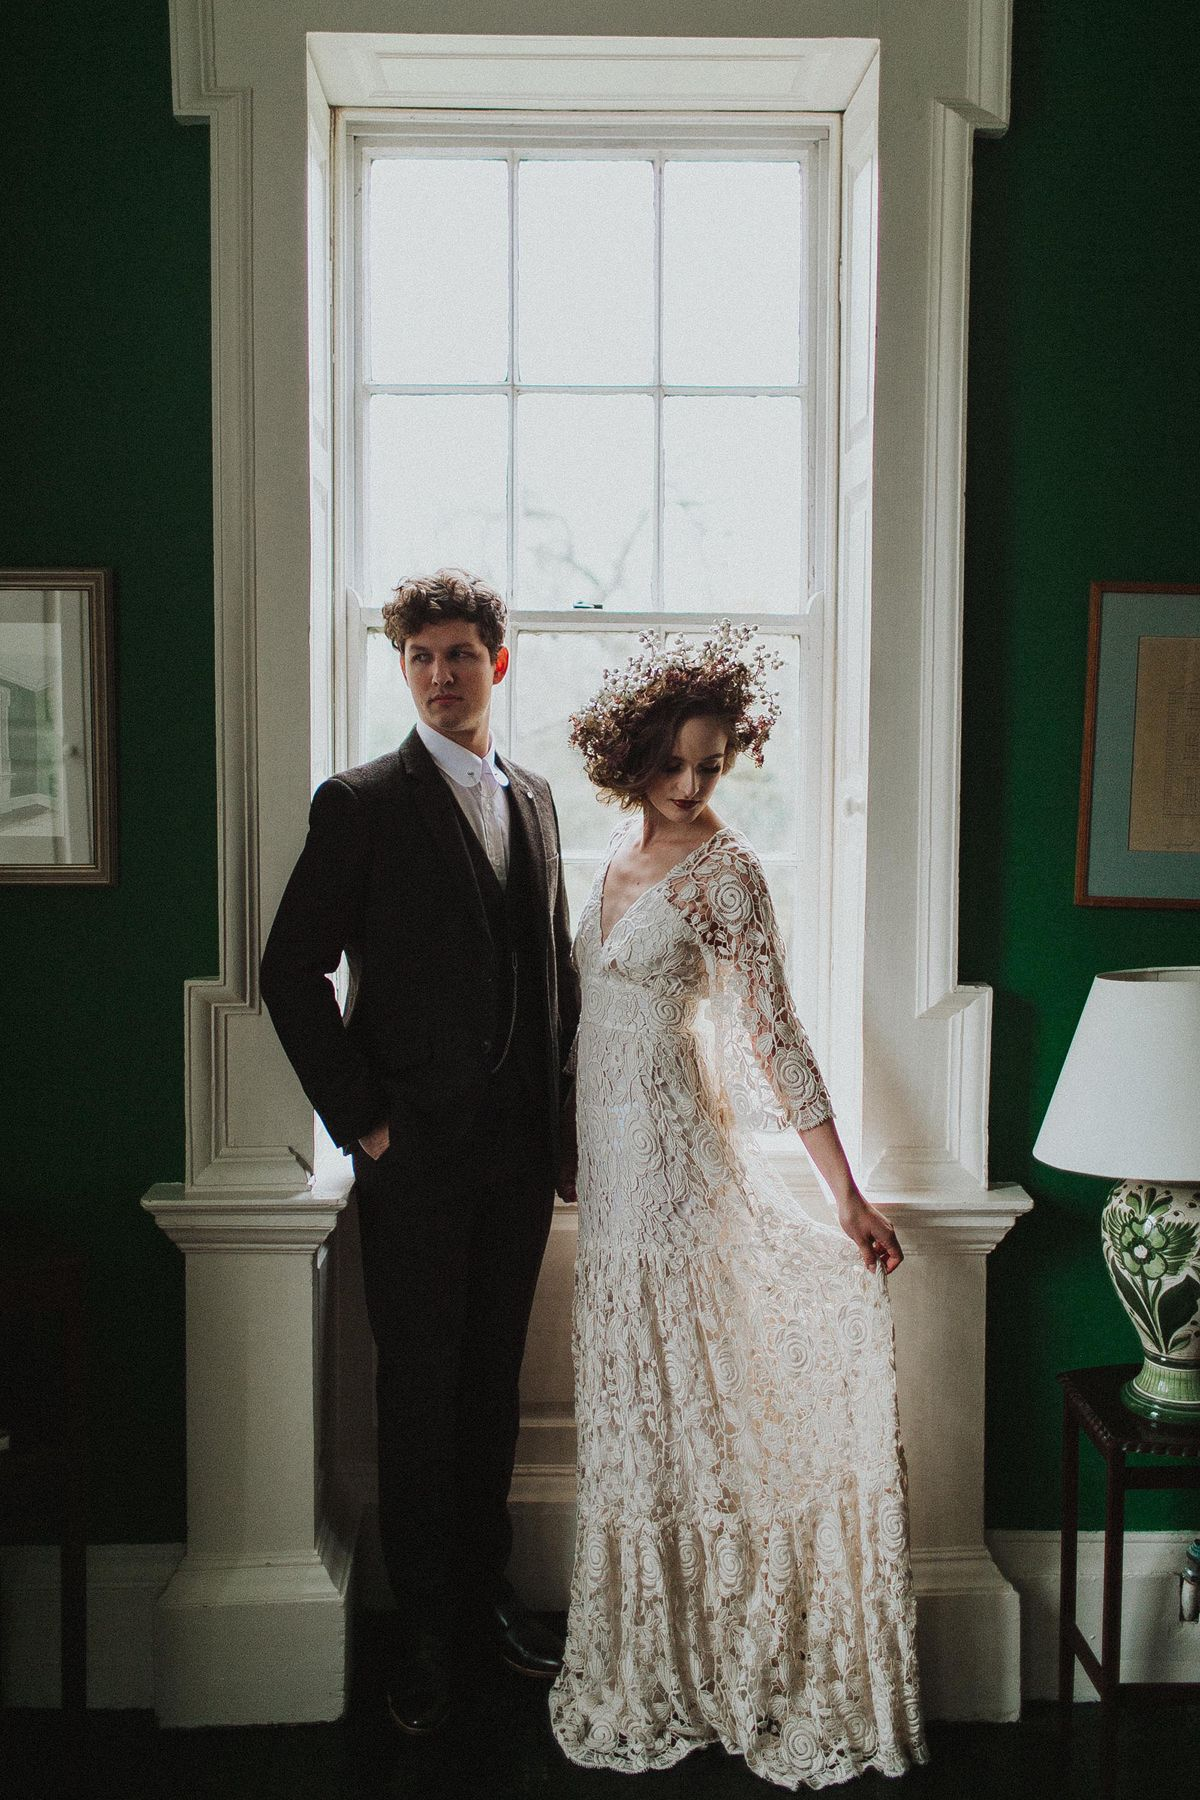 A Romantic Organic and Ethereal Autumn Inspired Wedding Editorial